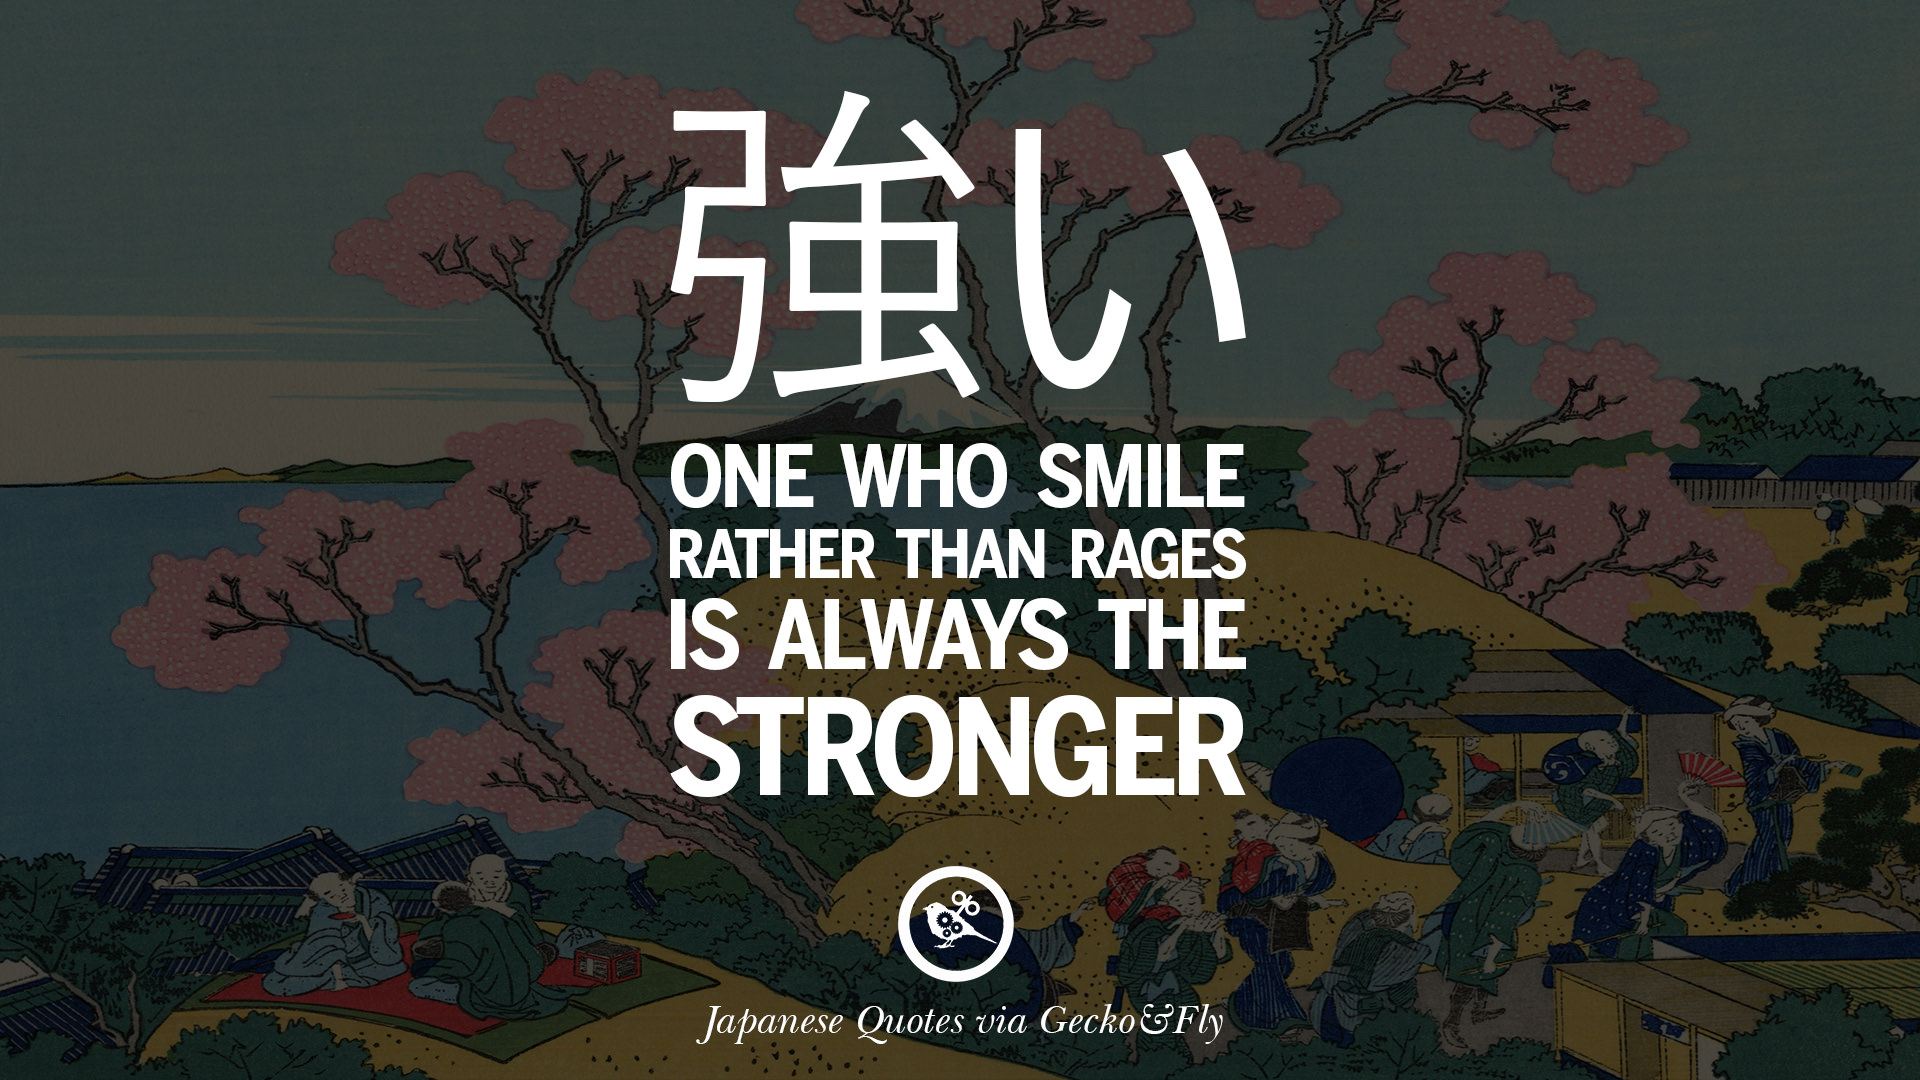 One Who Smile Rather Than Rages Is Always The Stronger.